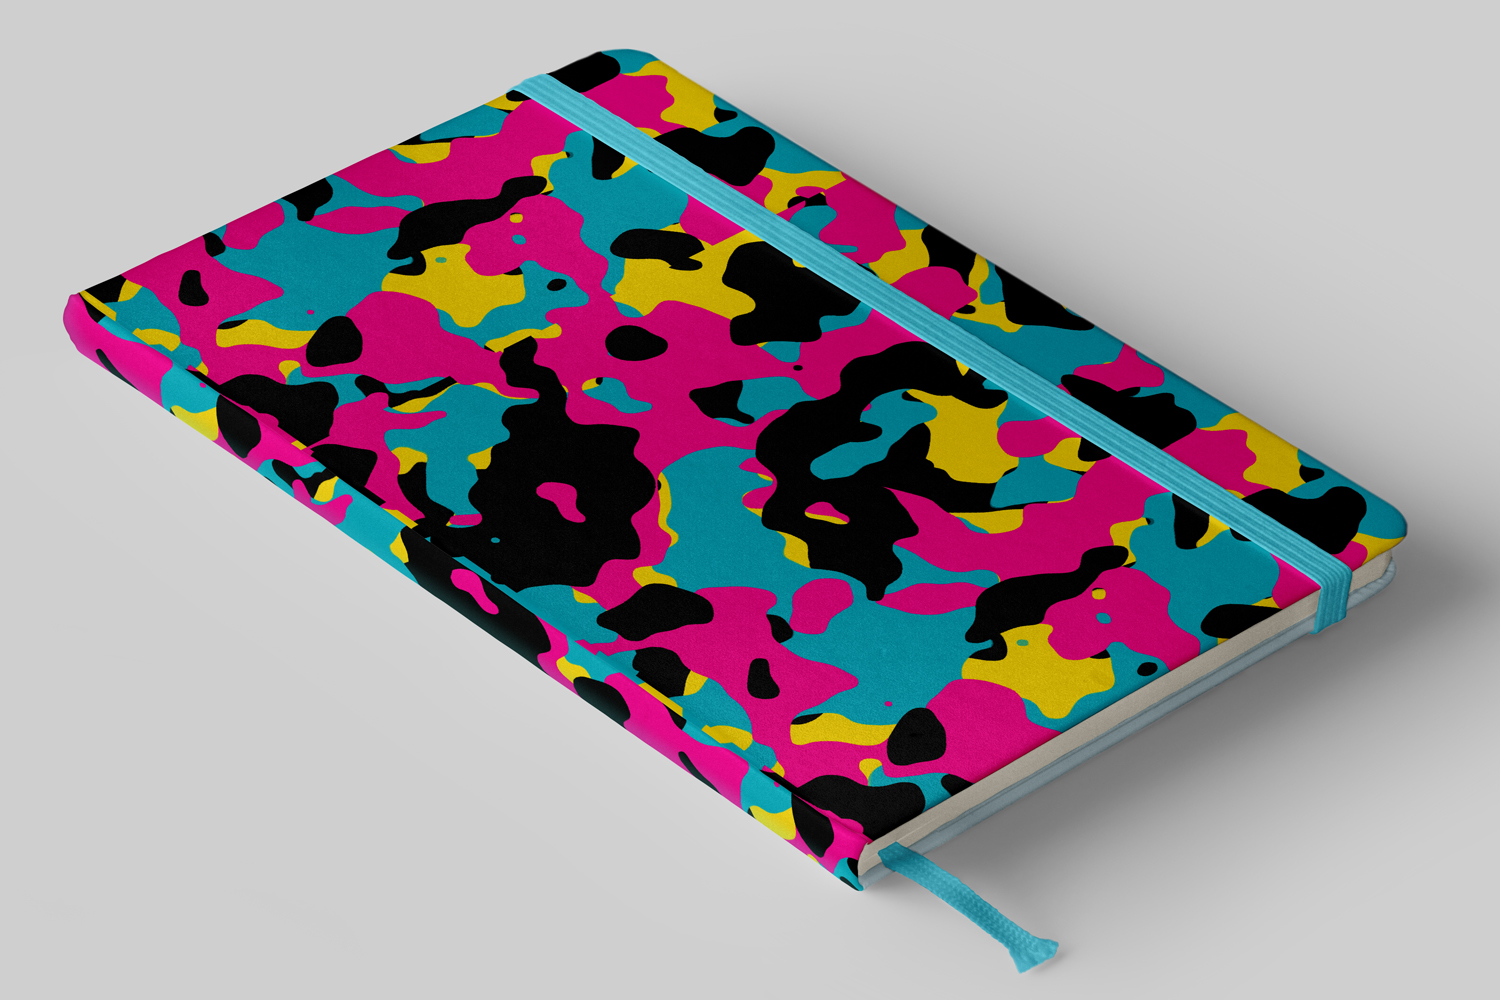 40 Alternative Camouflage Paper Designs example image 7